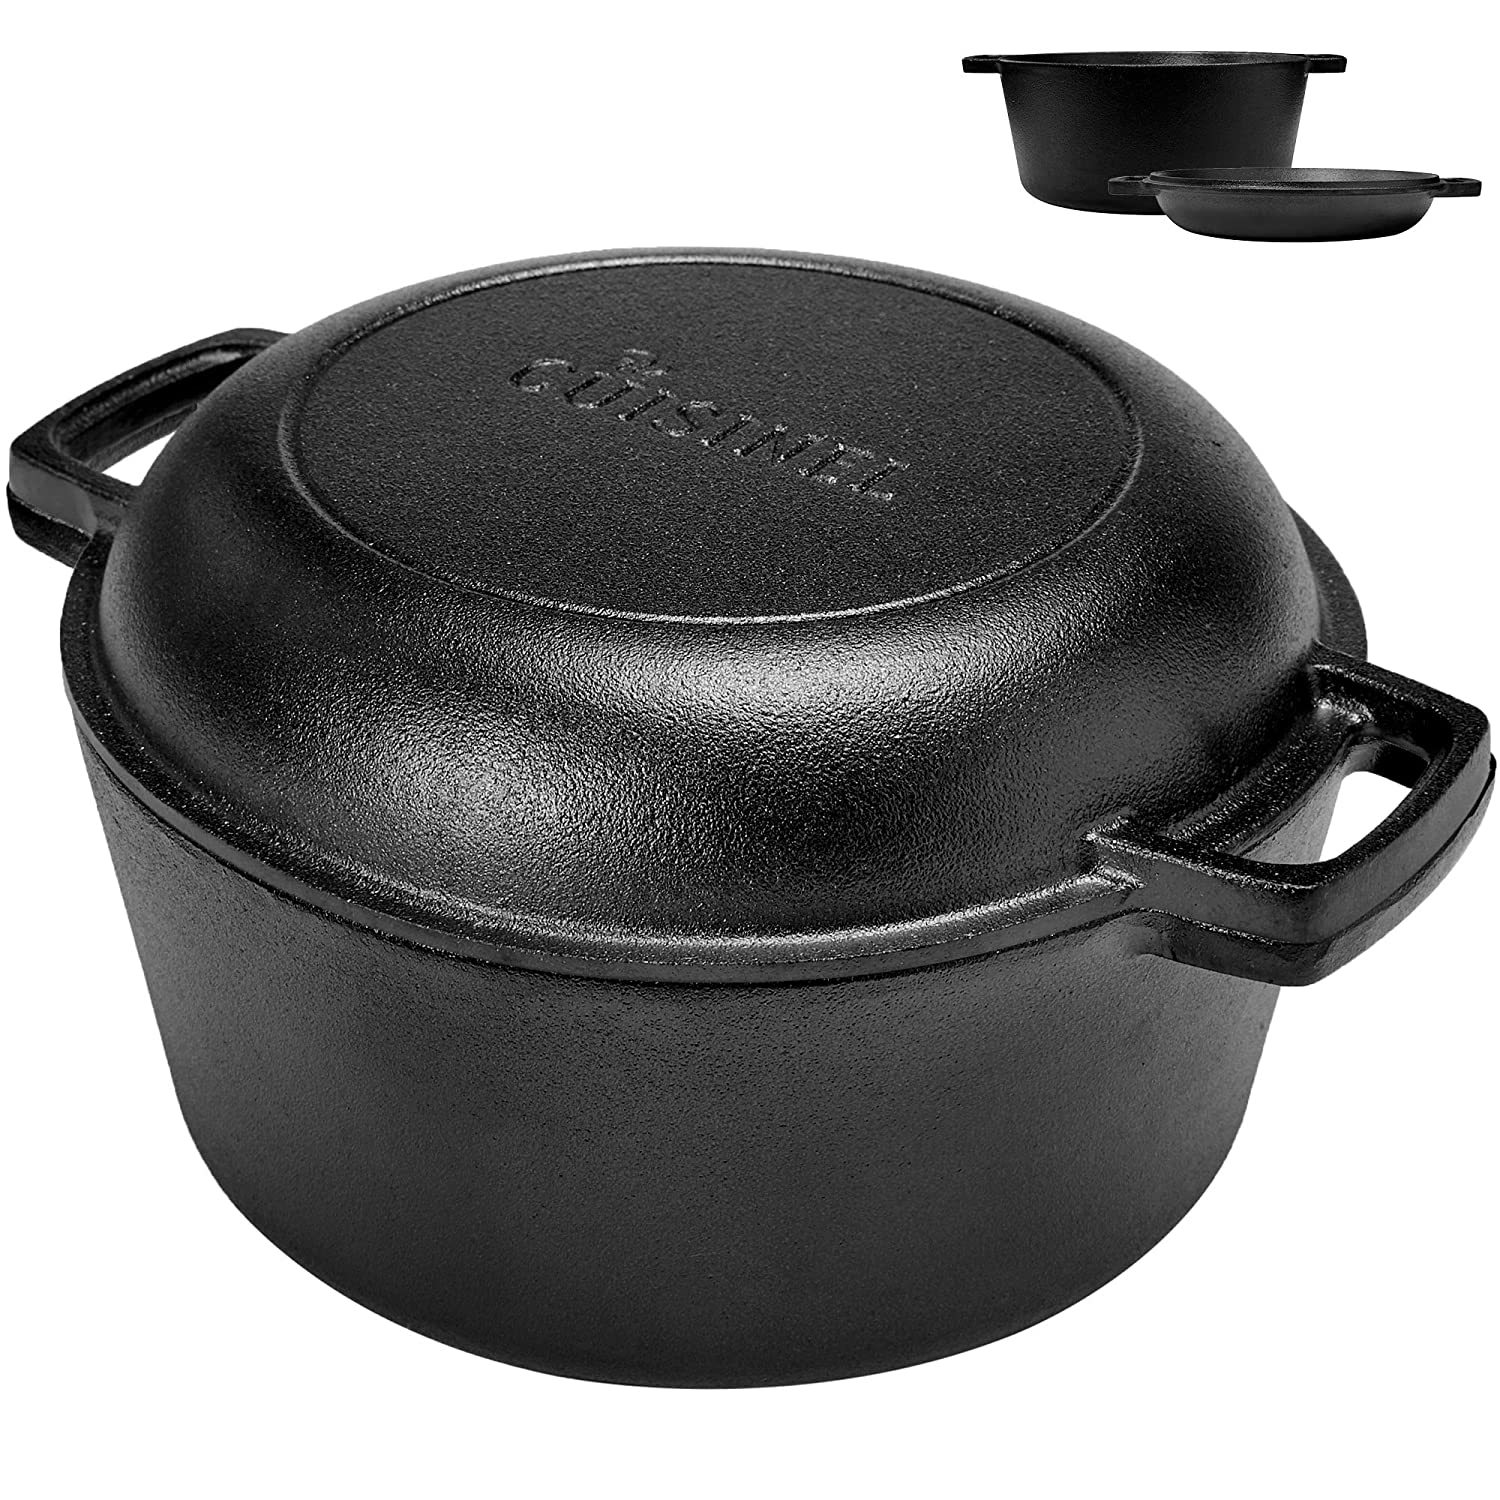 "Cuisinel Pre Seasoned Cast Iron Skillet and Double Dutch Oven Set – 2 in 1 Cooker: 5 Quart Deep Pan, 10"" Frying Pan Converts to Lid for Dutch Oven – Grill, Stove Top and Induction Safe"